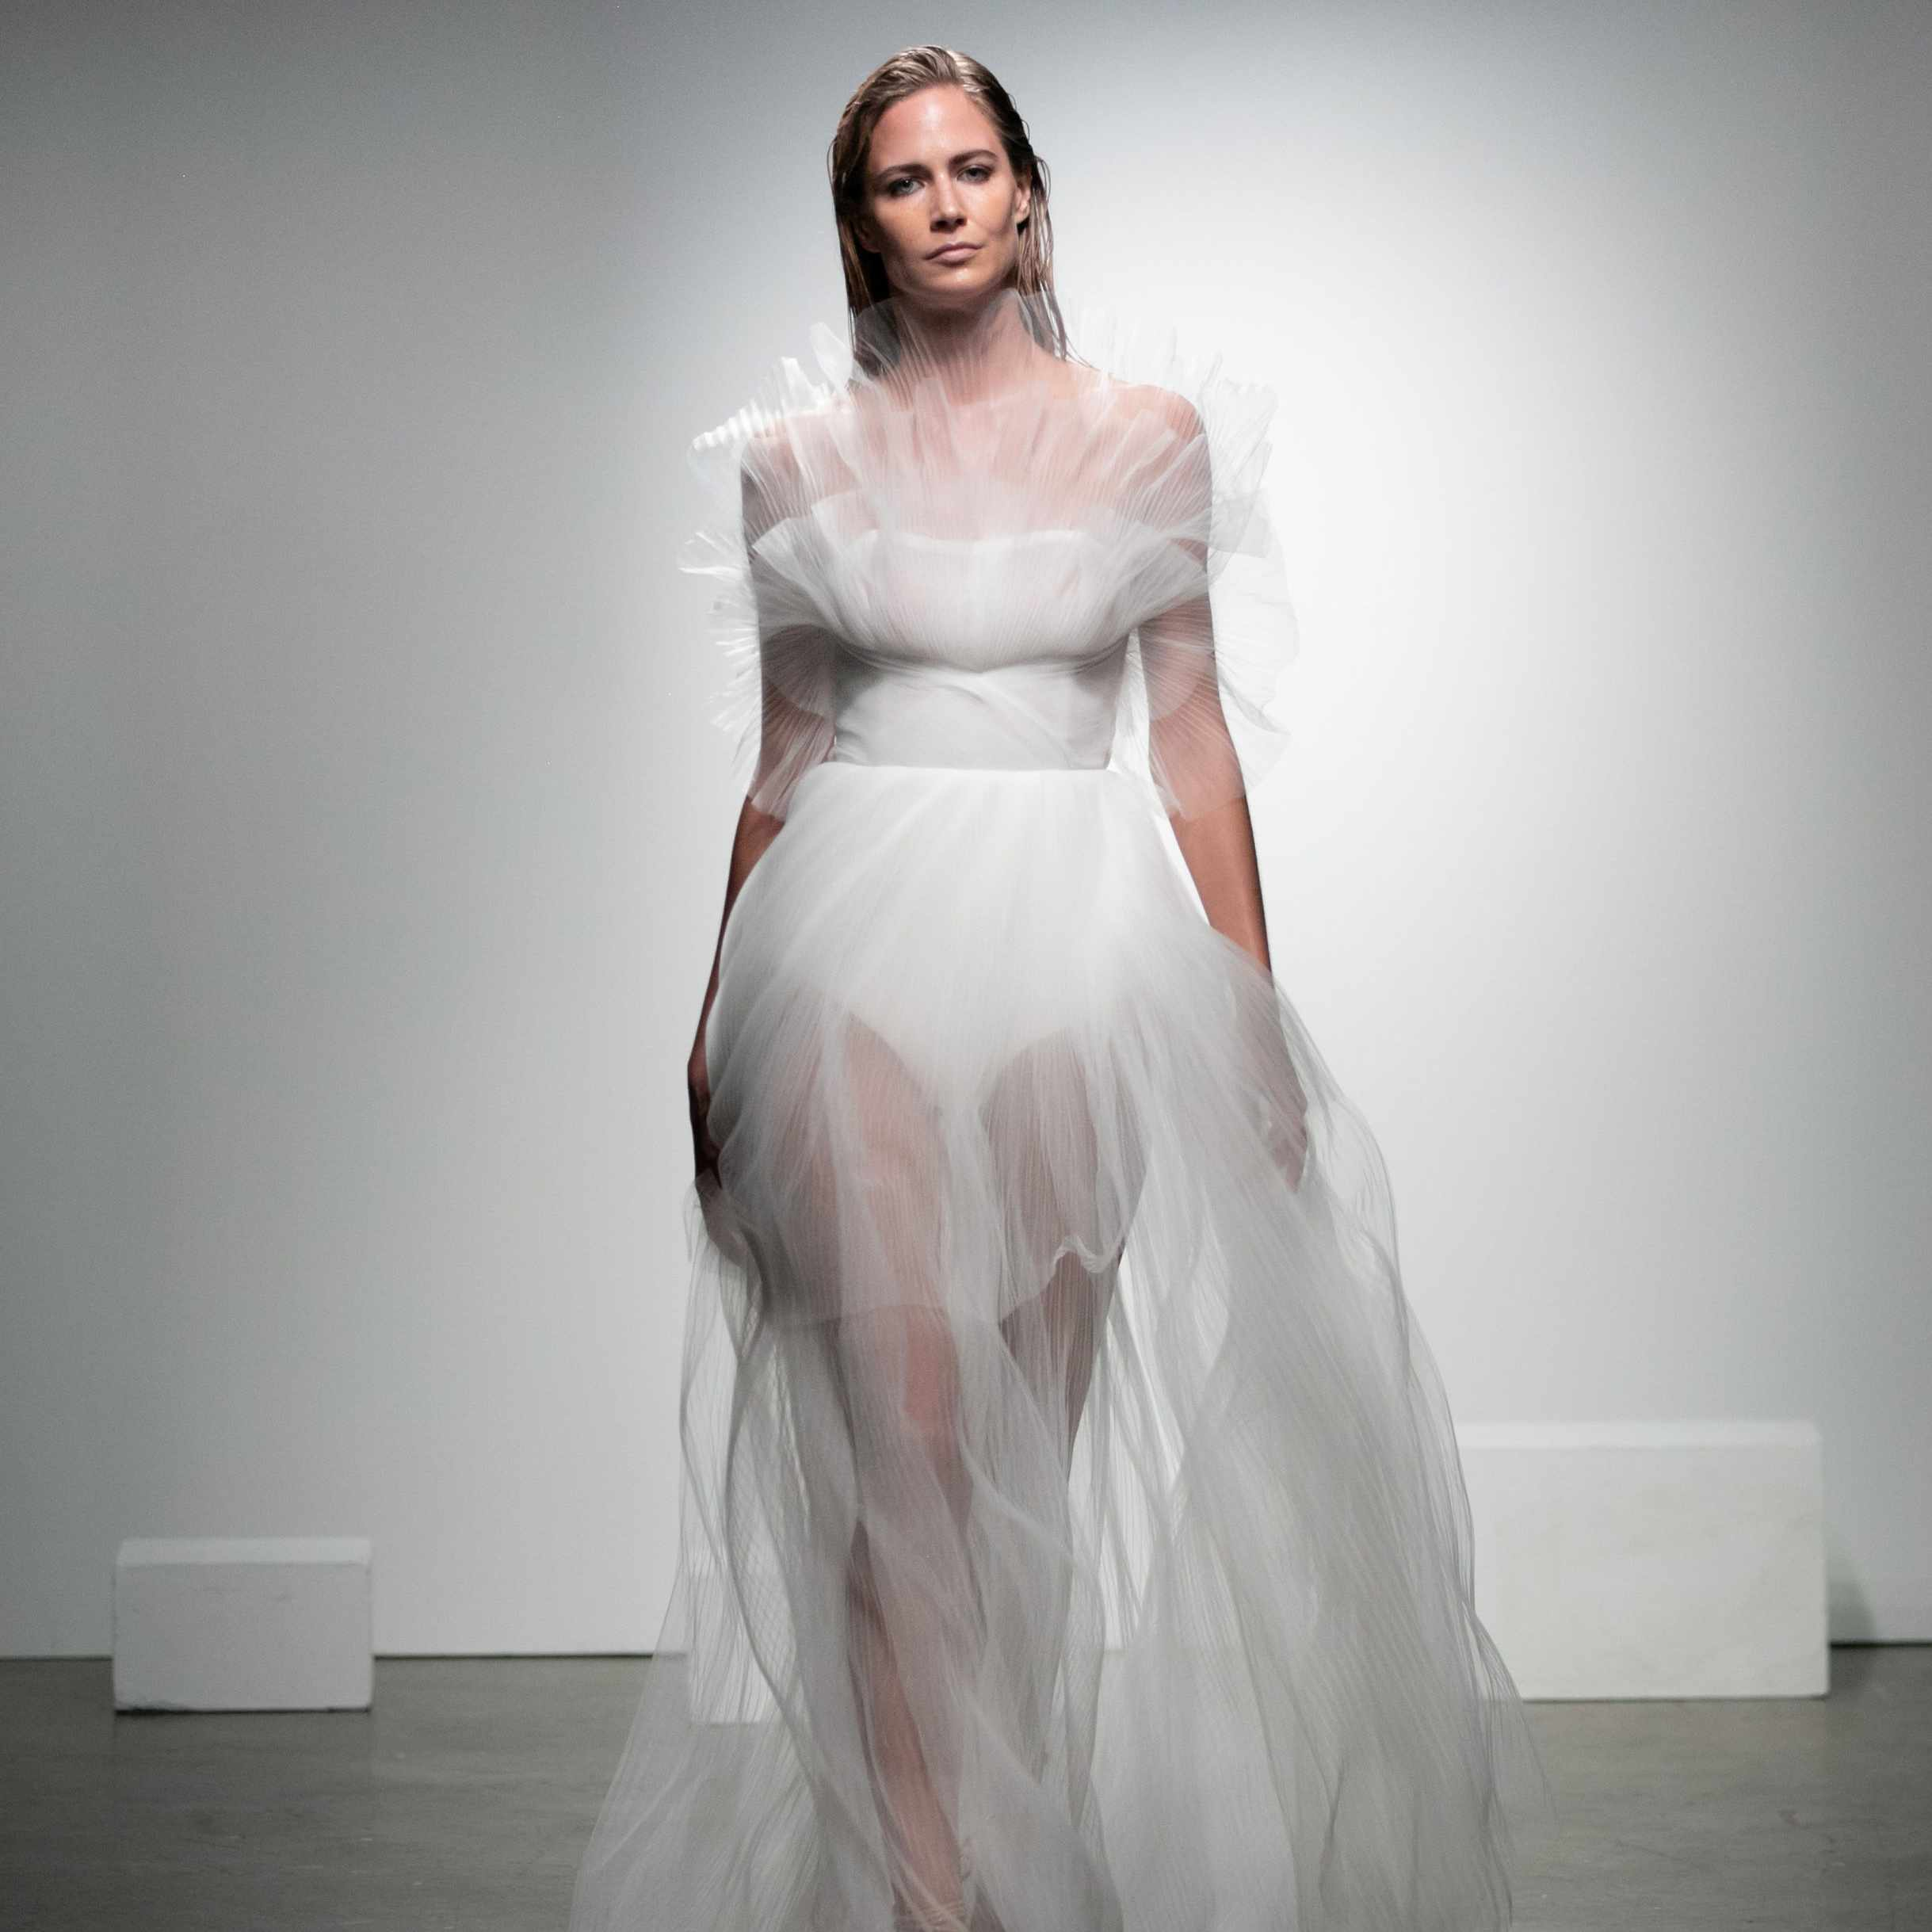 Model in bustier dress with see-through pleated tulle